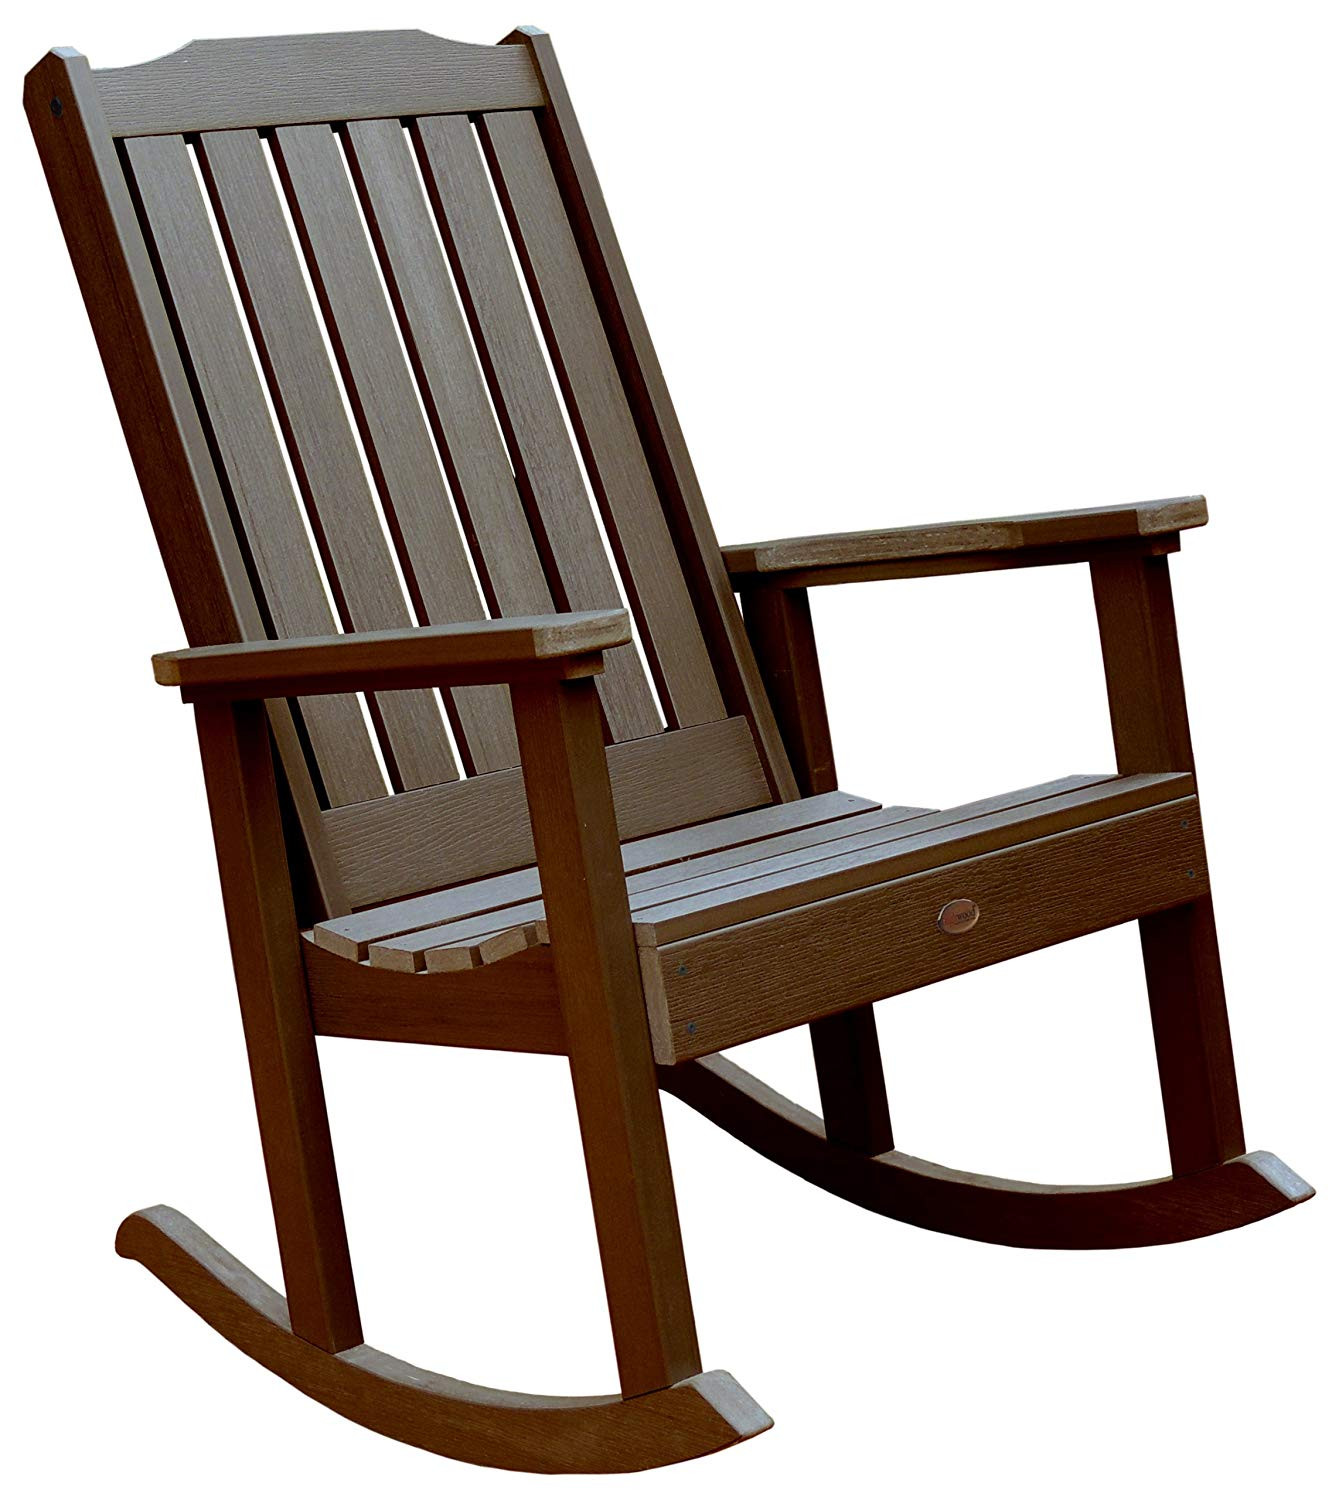 Best ideas about Outdoor Rocking Chairs . Save or Pin Outdoor Rocking Chairs For Heavy People Now.